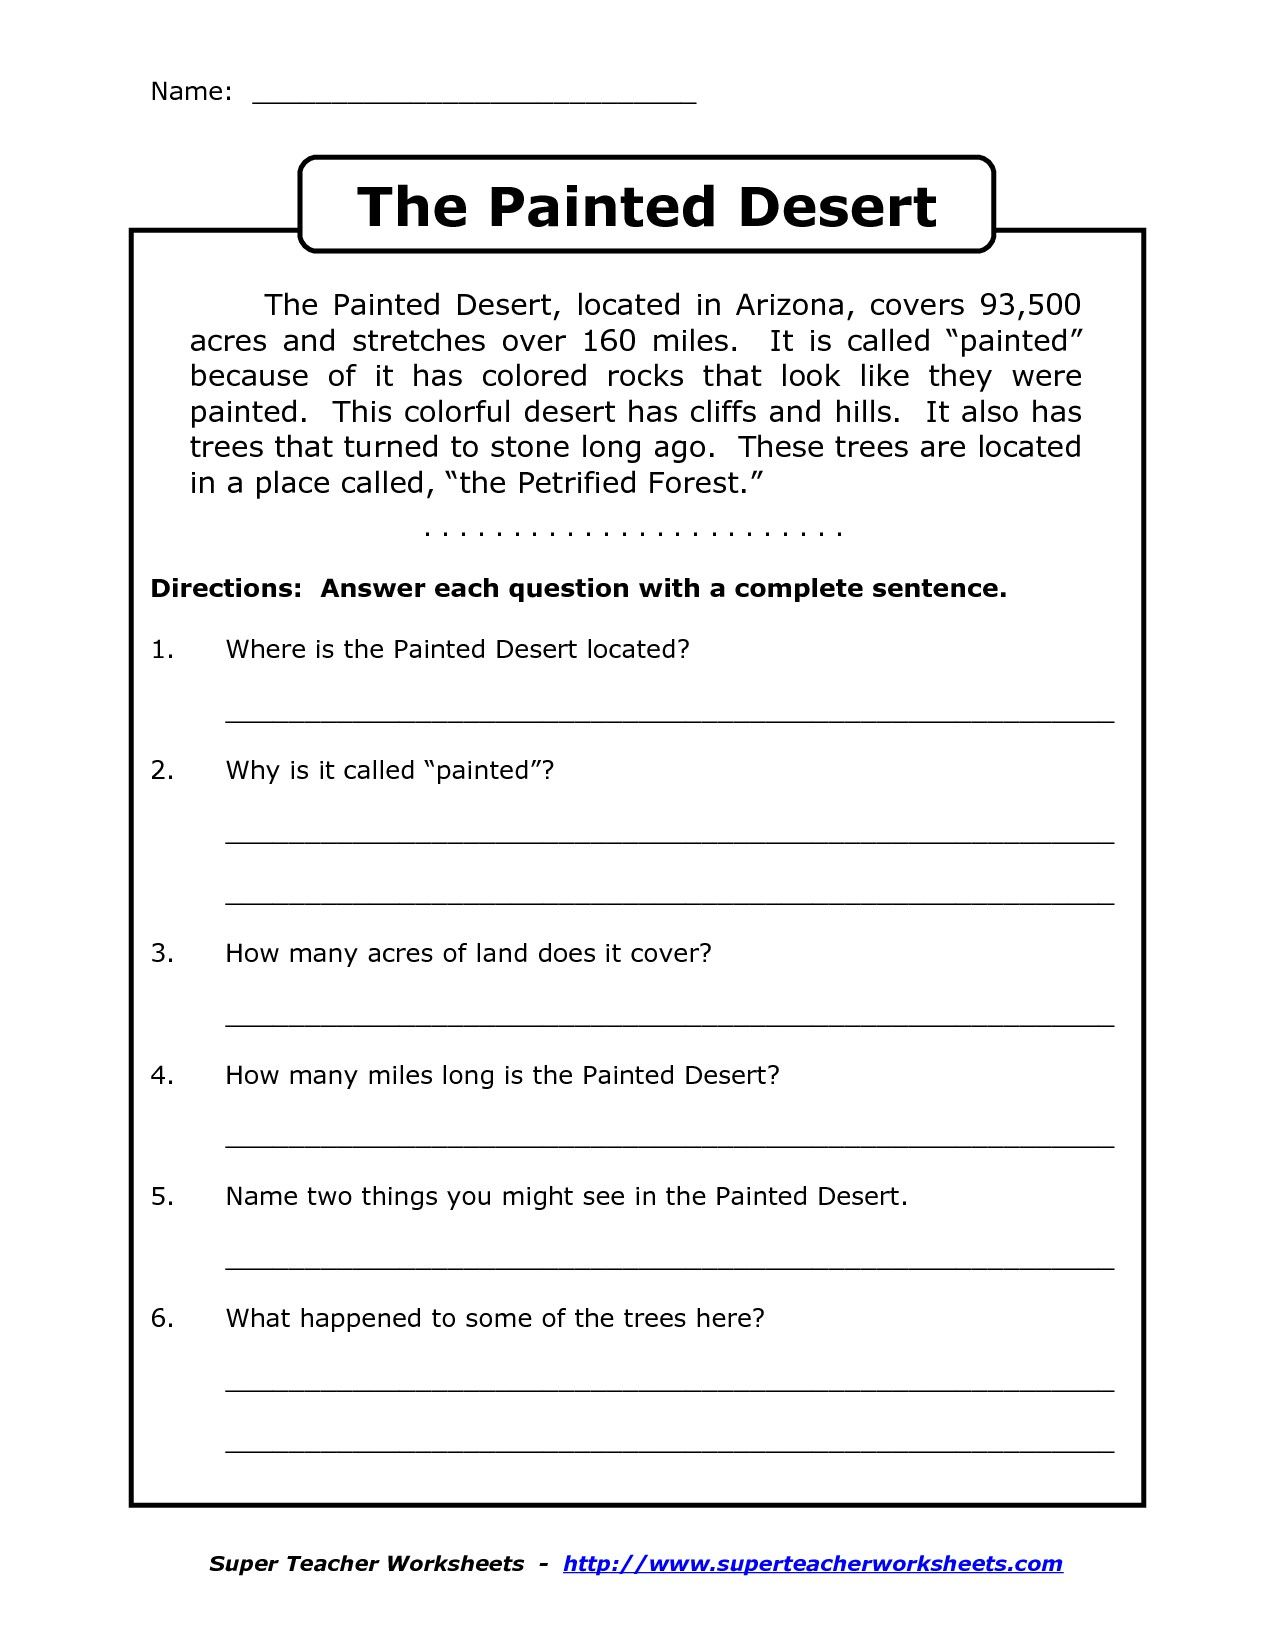 worksheet Grade 8 Comprehension Worksheets Free Printable comprehension worksheet for 1st grade y2p3 the painted desert arizona